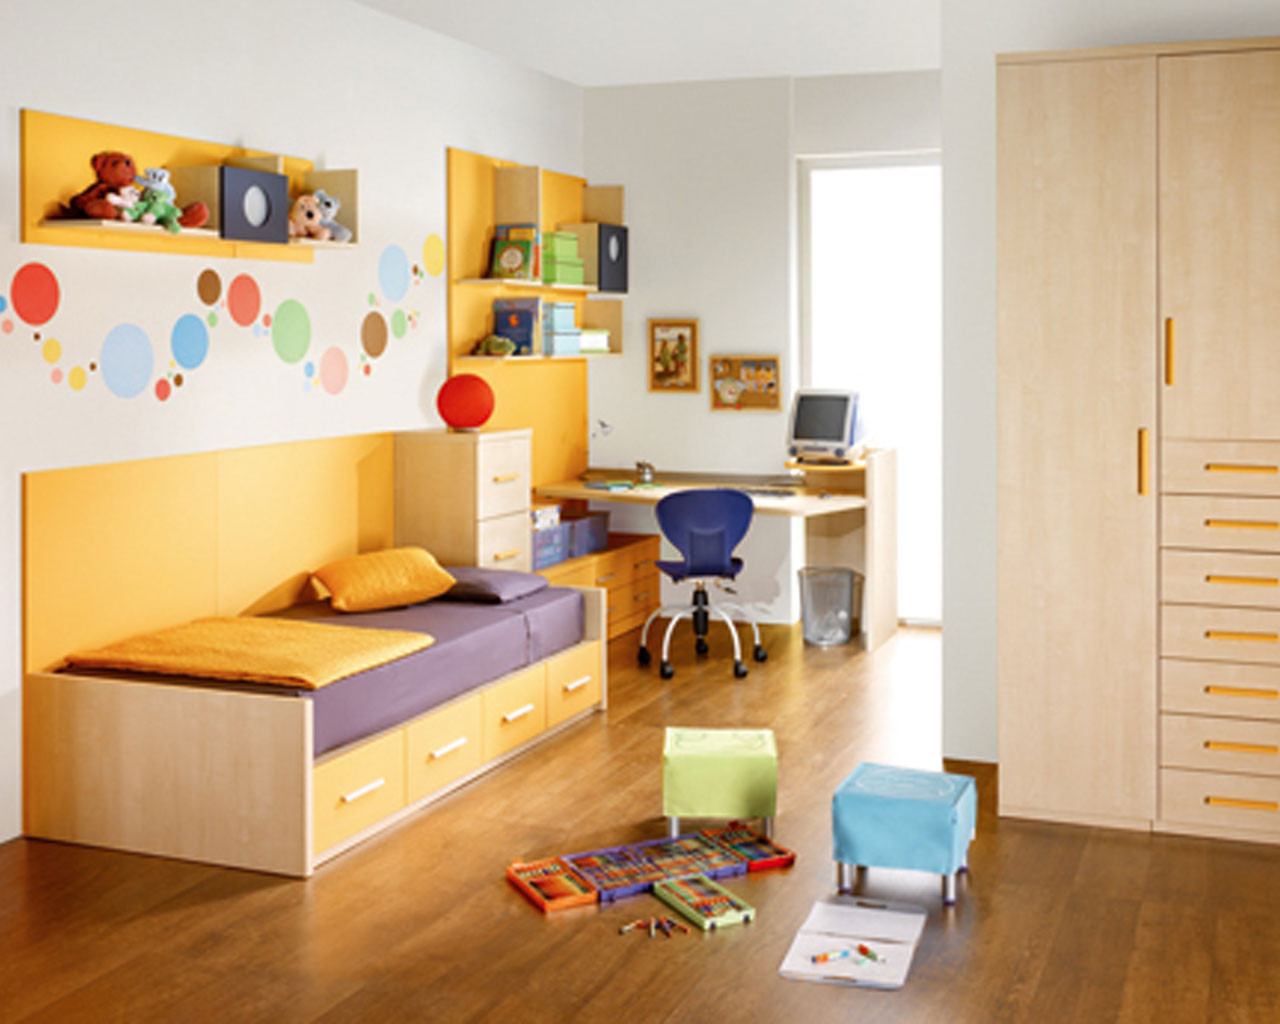 Best ideas about Kids Room Design . Save or Pin Kids Room Decor and Design Ideas as the Easy yet Effective Now.